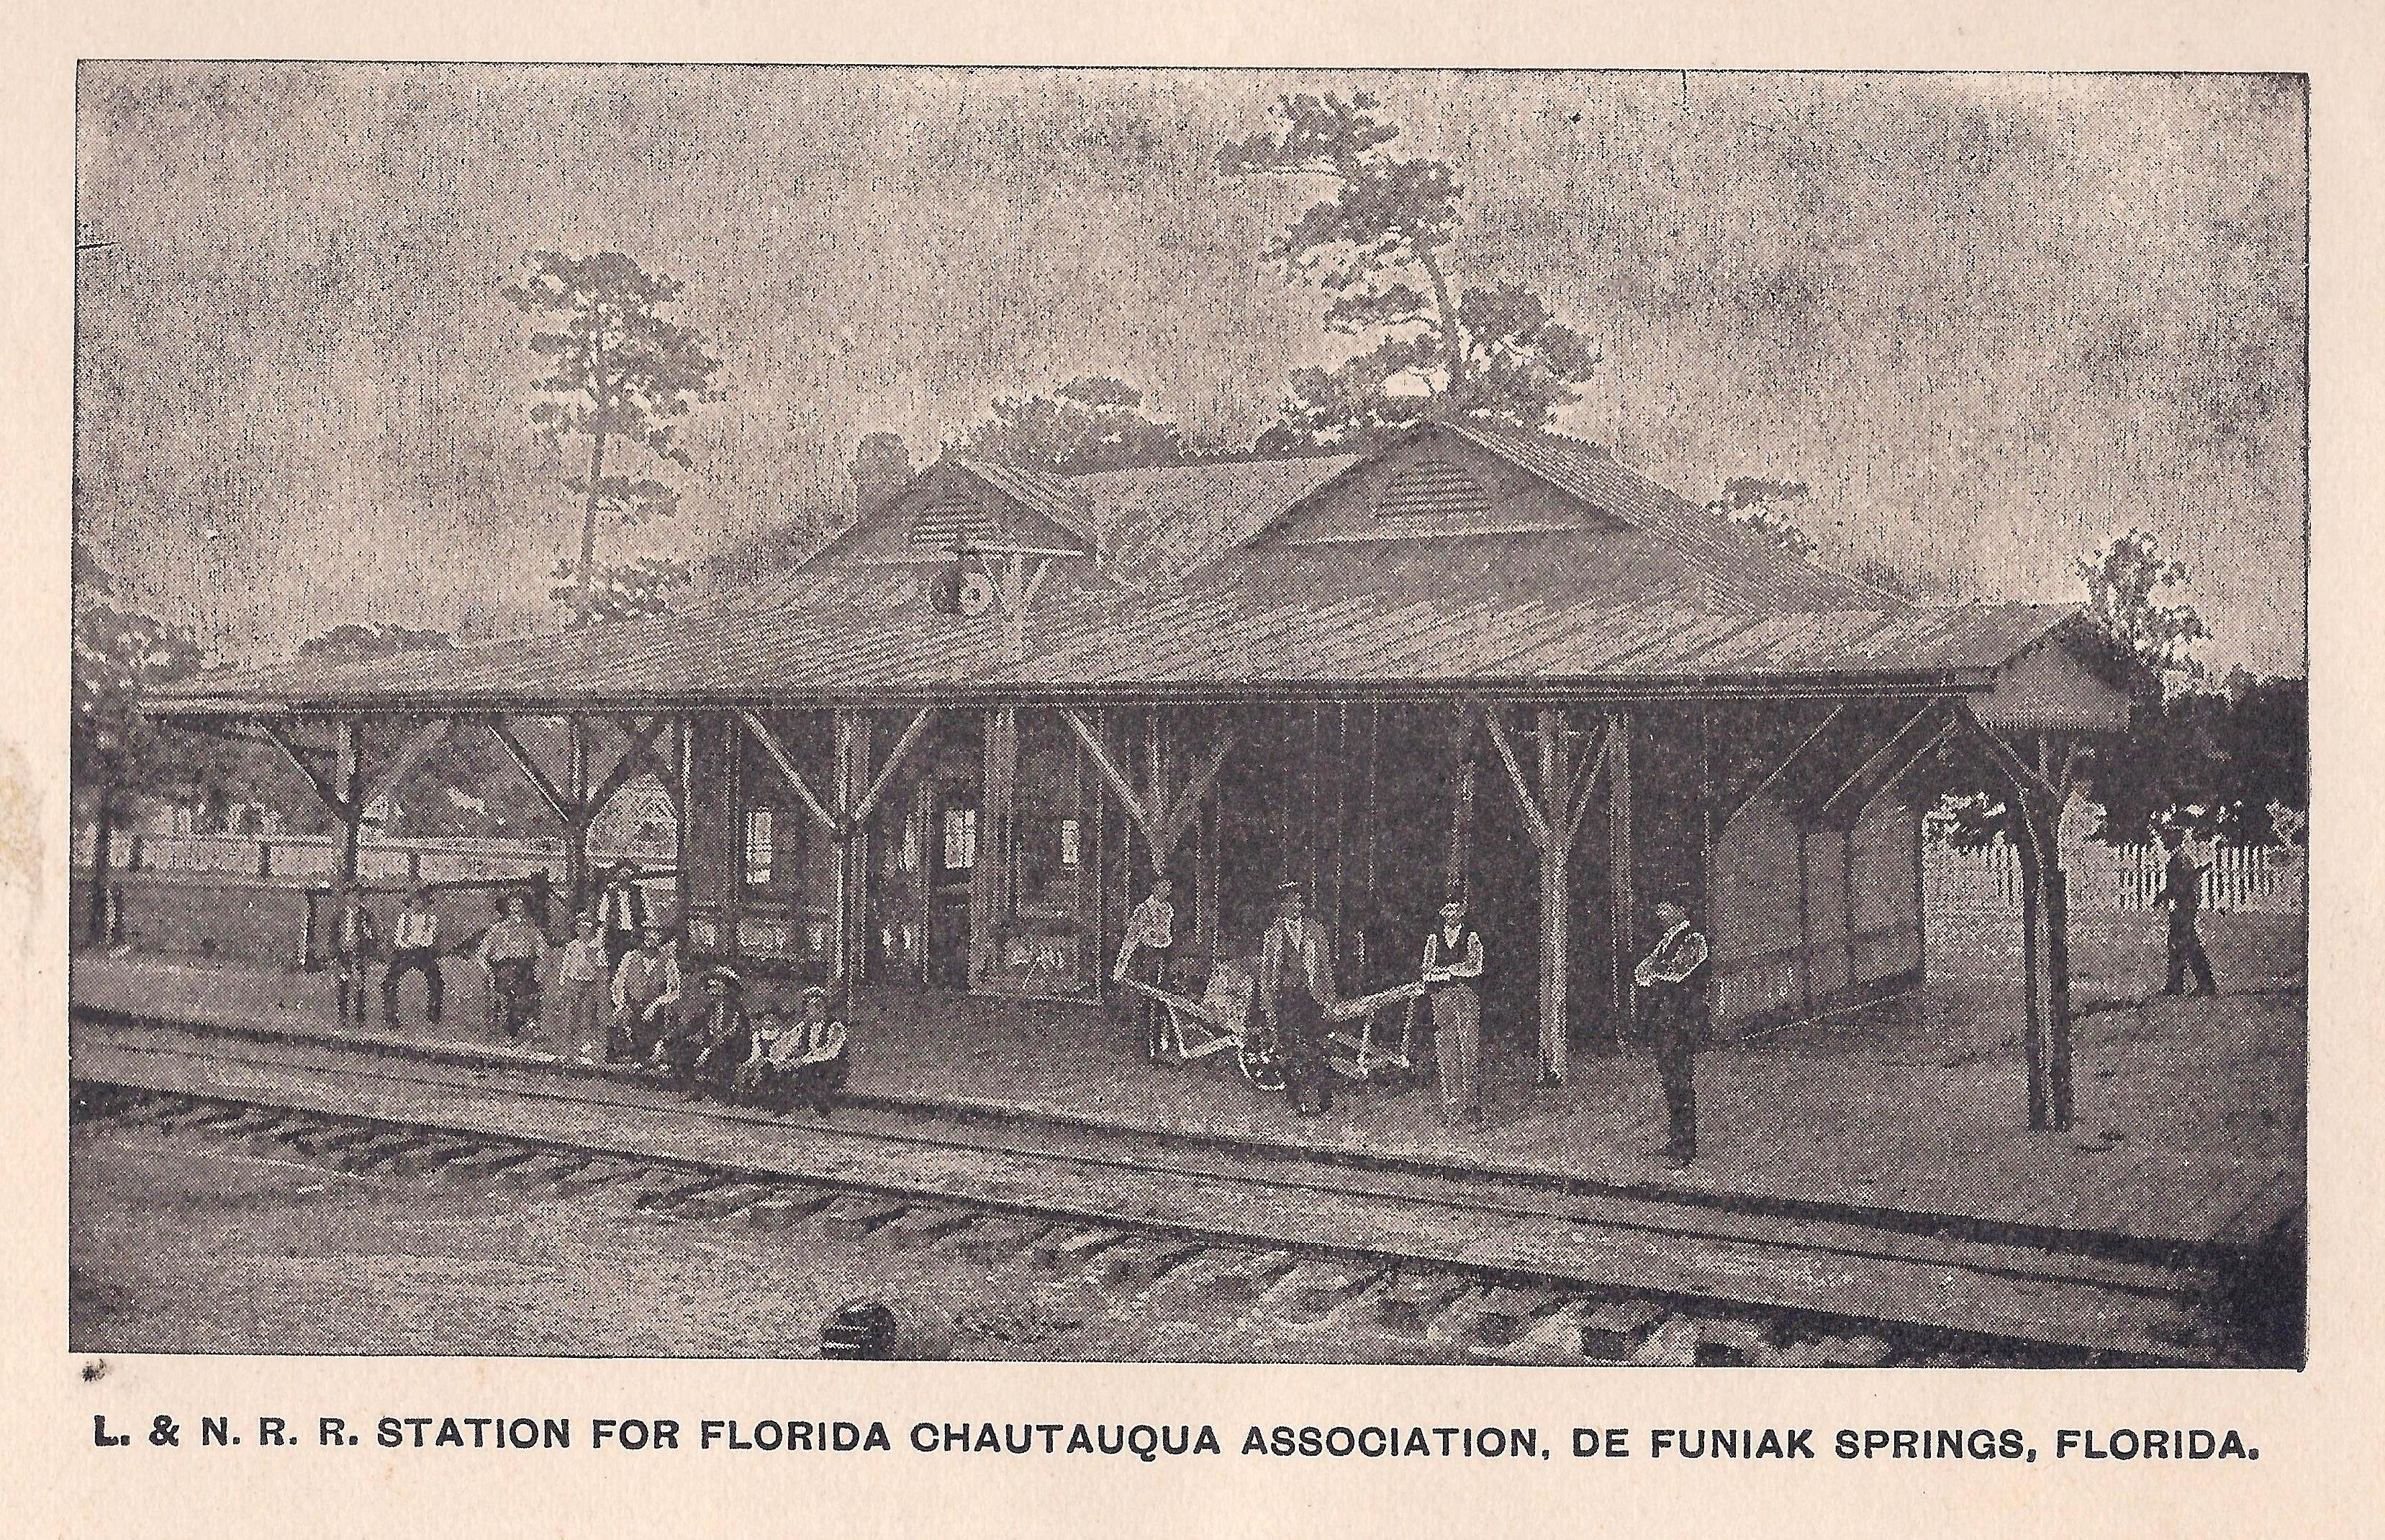 a train depot taken during the Victorian era